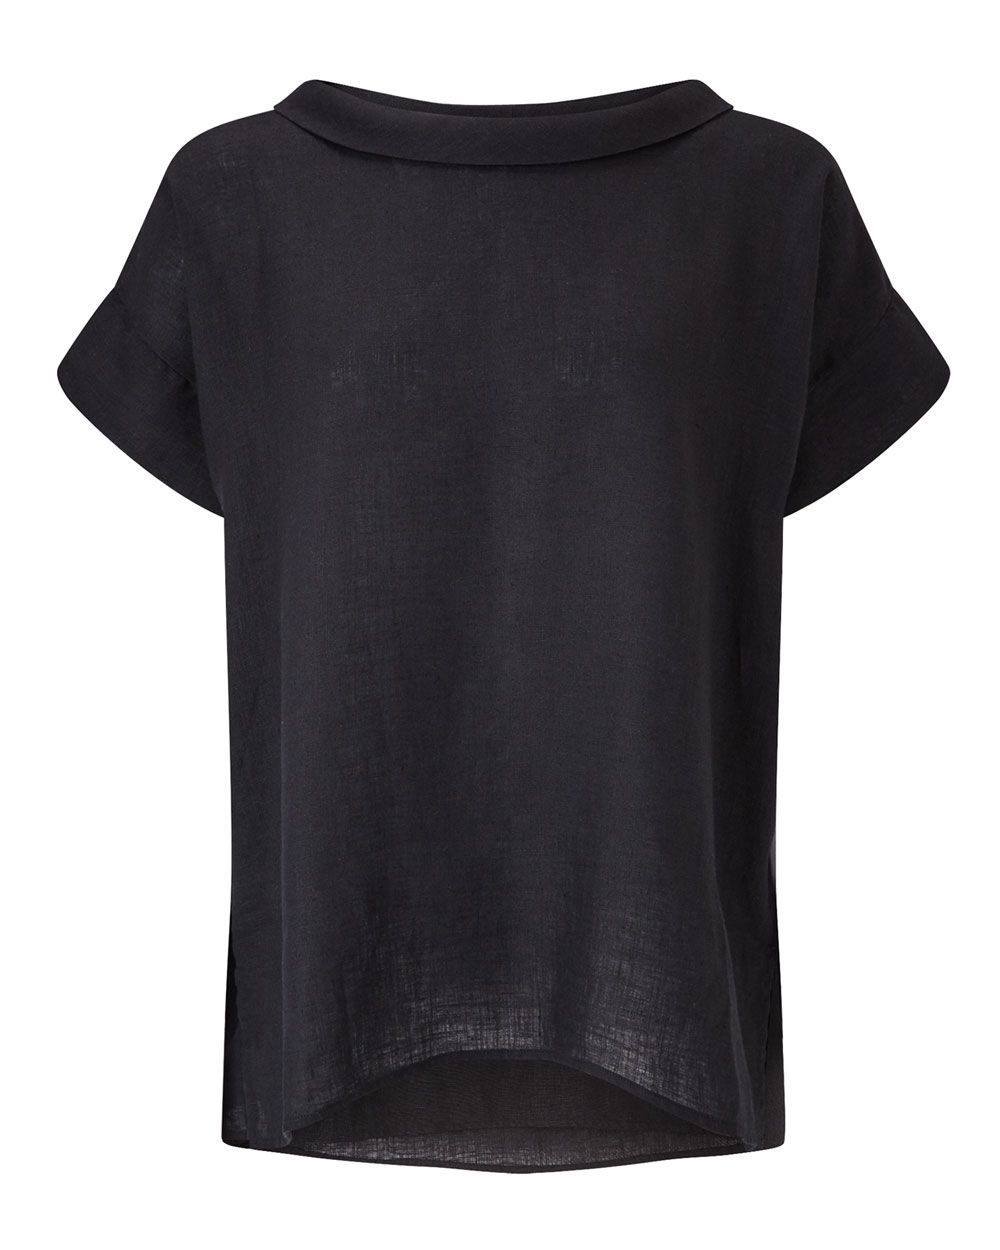 Bardot Neck Top, Black - pattern: plain; neckline: high neck; style: t-shirt; predominant colour: black; occasions: casual; length: standard; fibres: linen - 100%; fit: straight cut; sleeve length: short sleeve; sleeve style: standard; texture group: linen; pattern type: fabric; season: s/s 2016